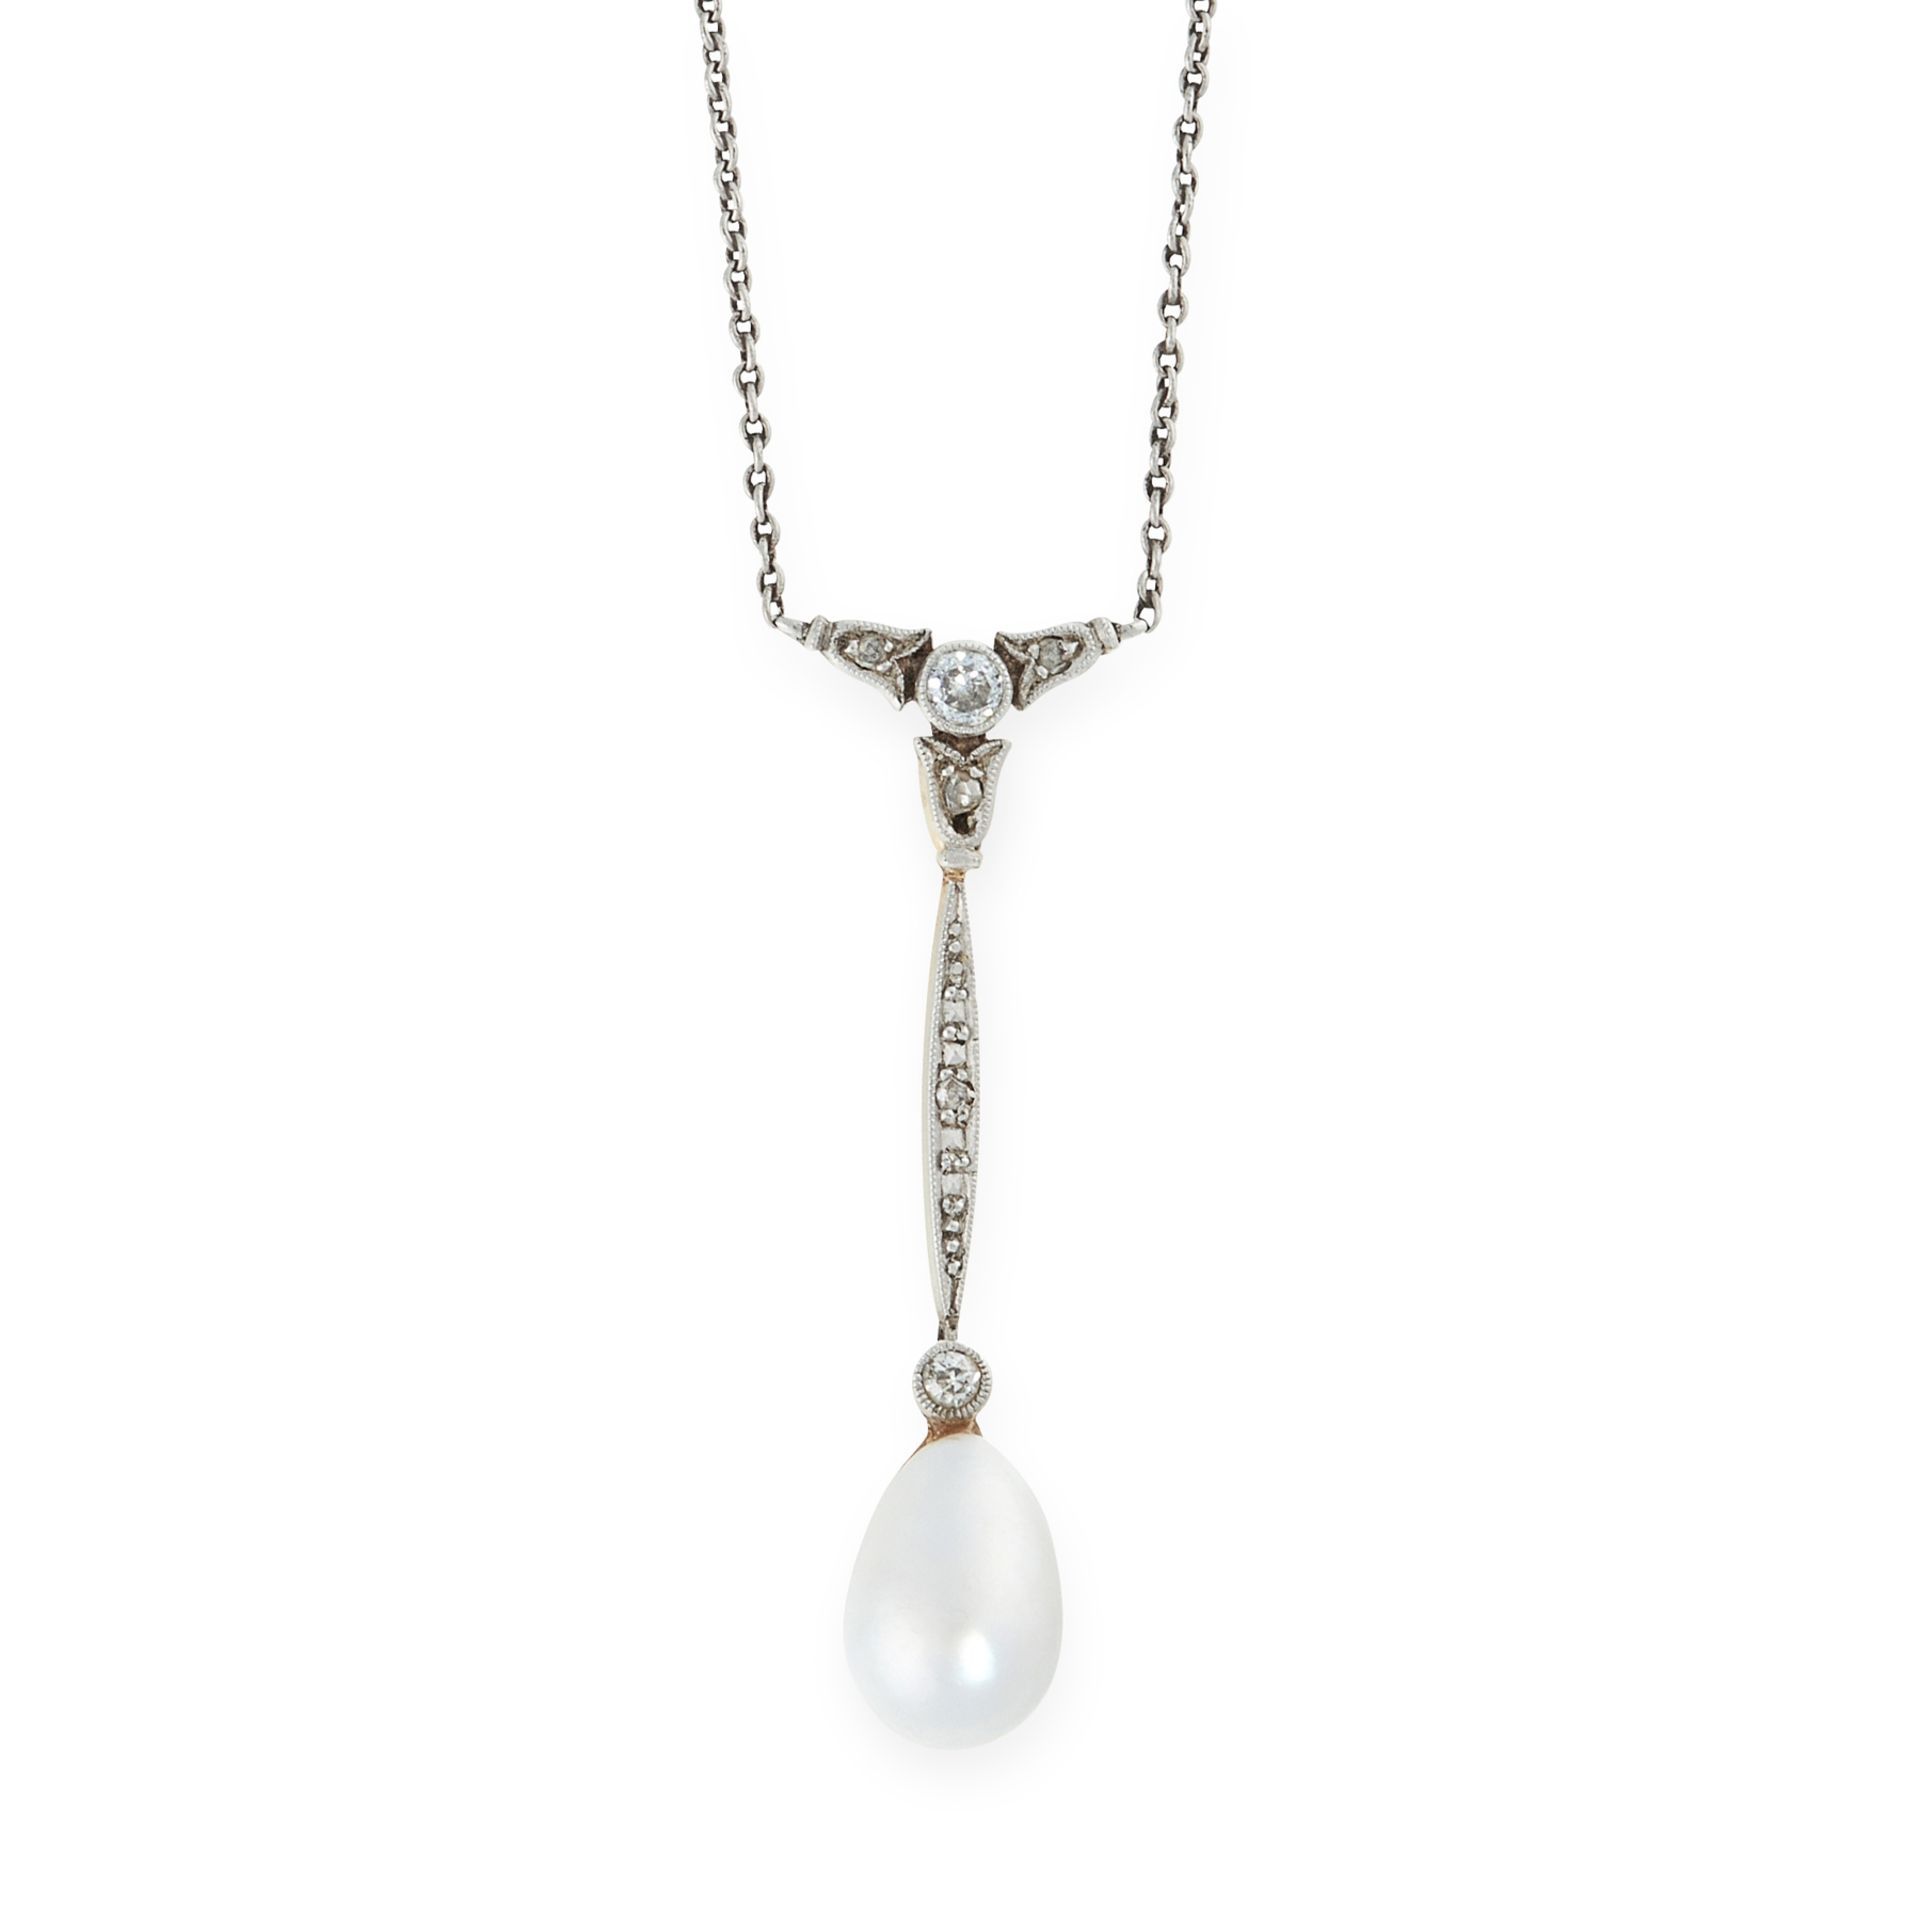 A PEARL AND DIAMOND PENDANT NECKLACE, EARLY 20TH CENTURY set with a drop shaped pearl of 9.5mm